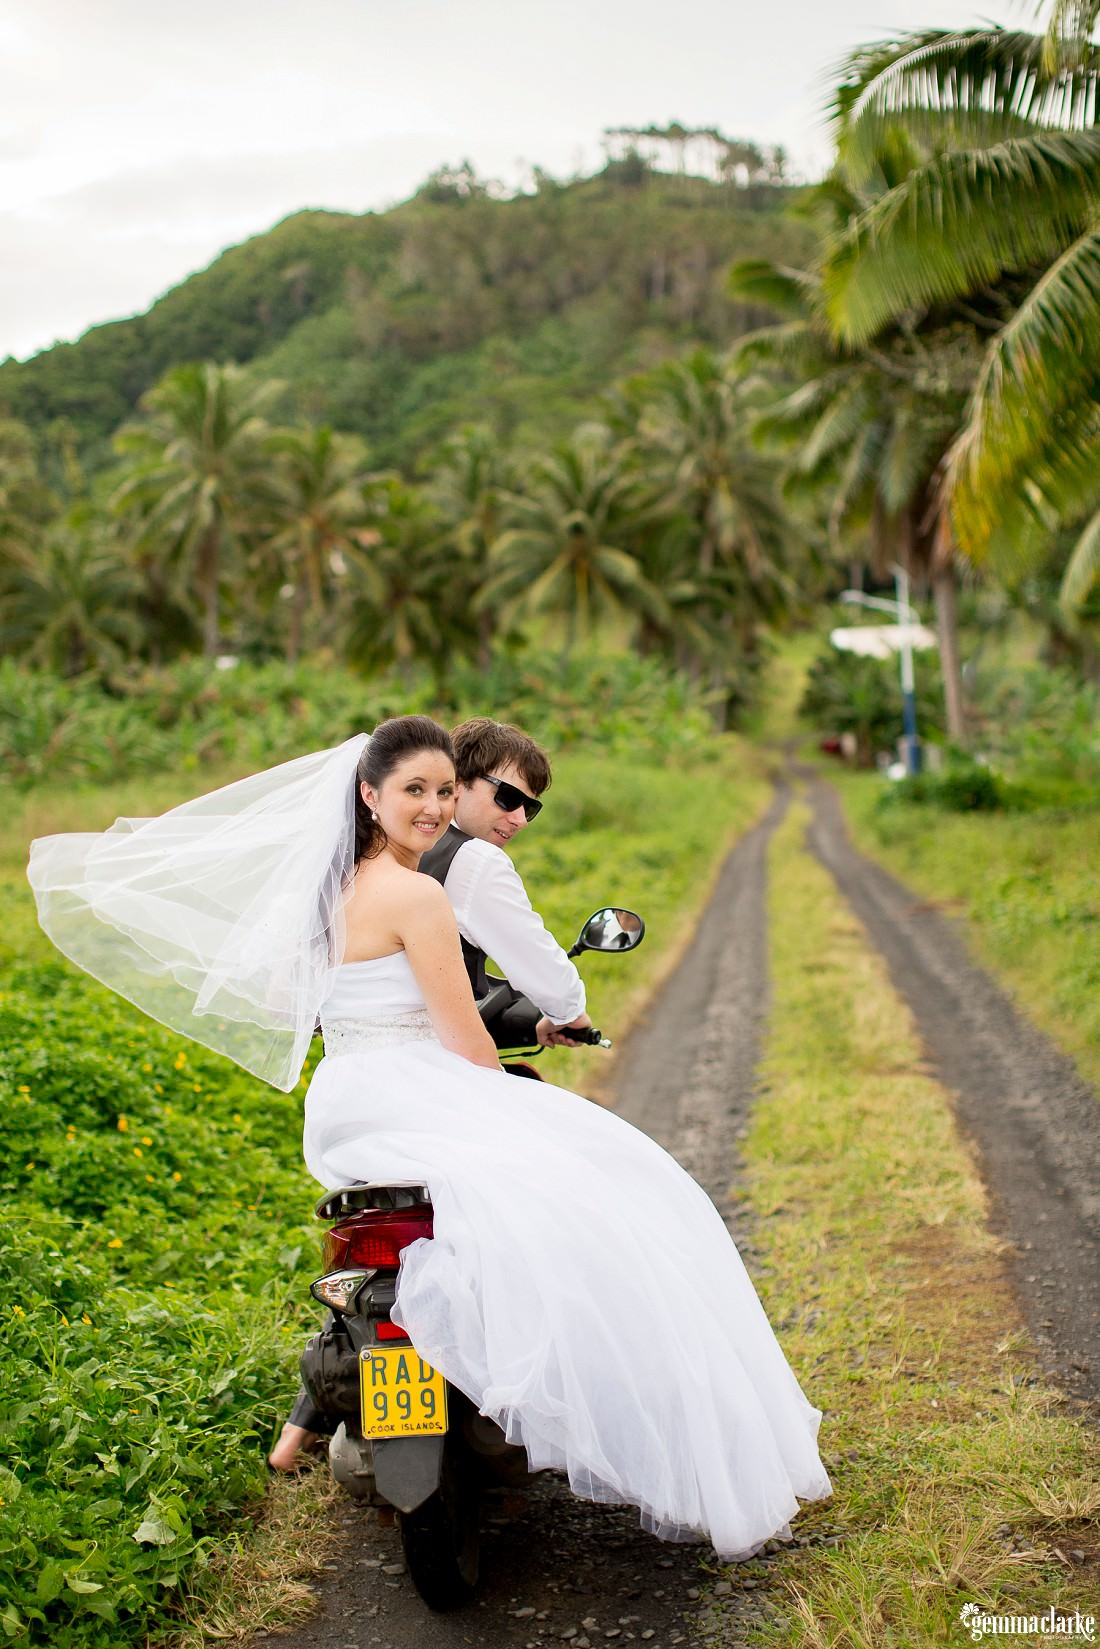 gemmaclarkephotography_south-pacific-destination-wedding_island-wedding_natalie-and-alex_0062